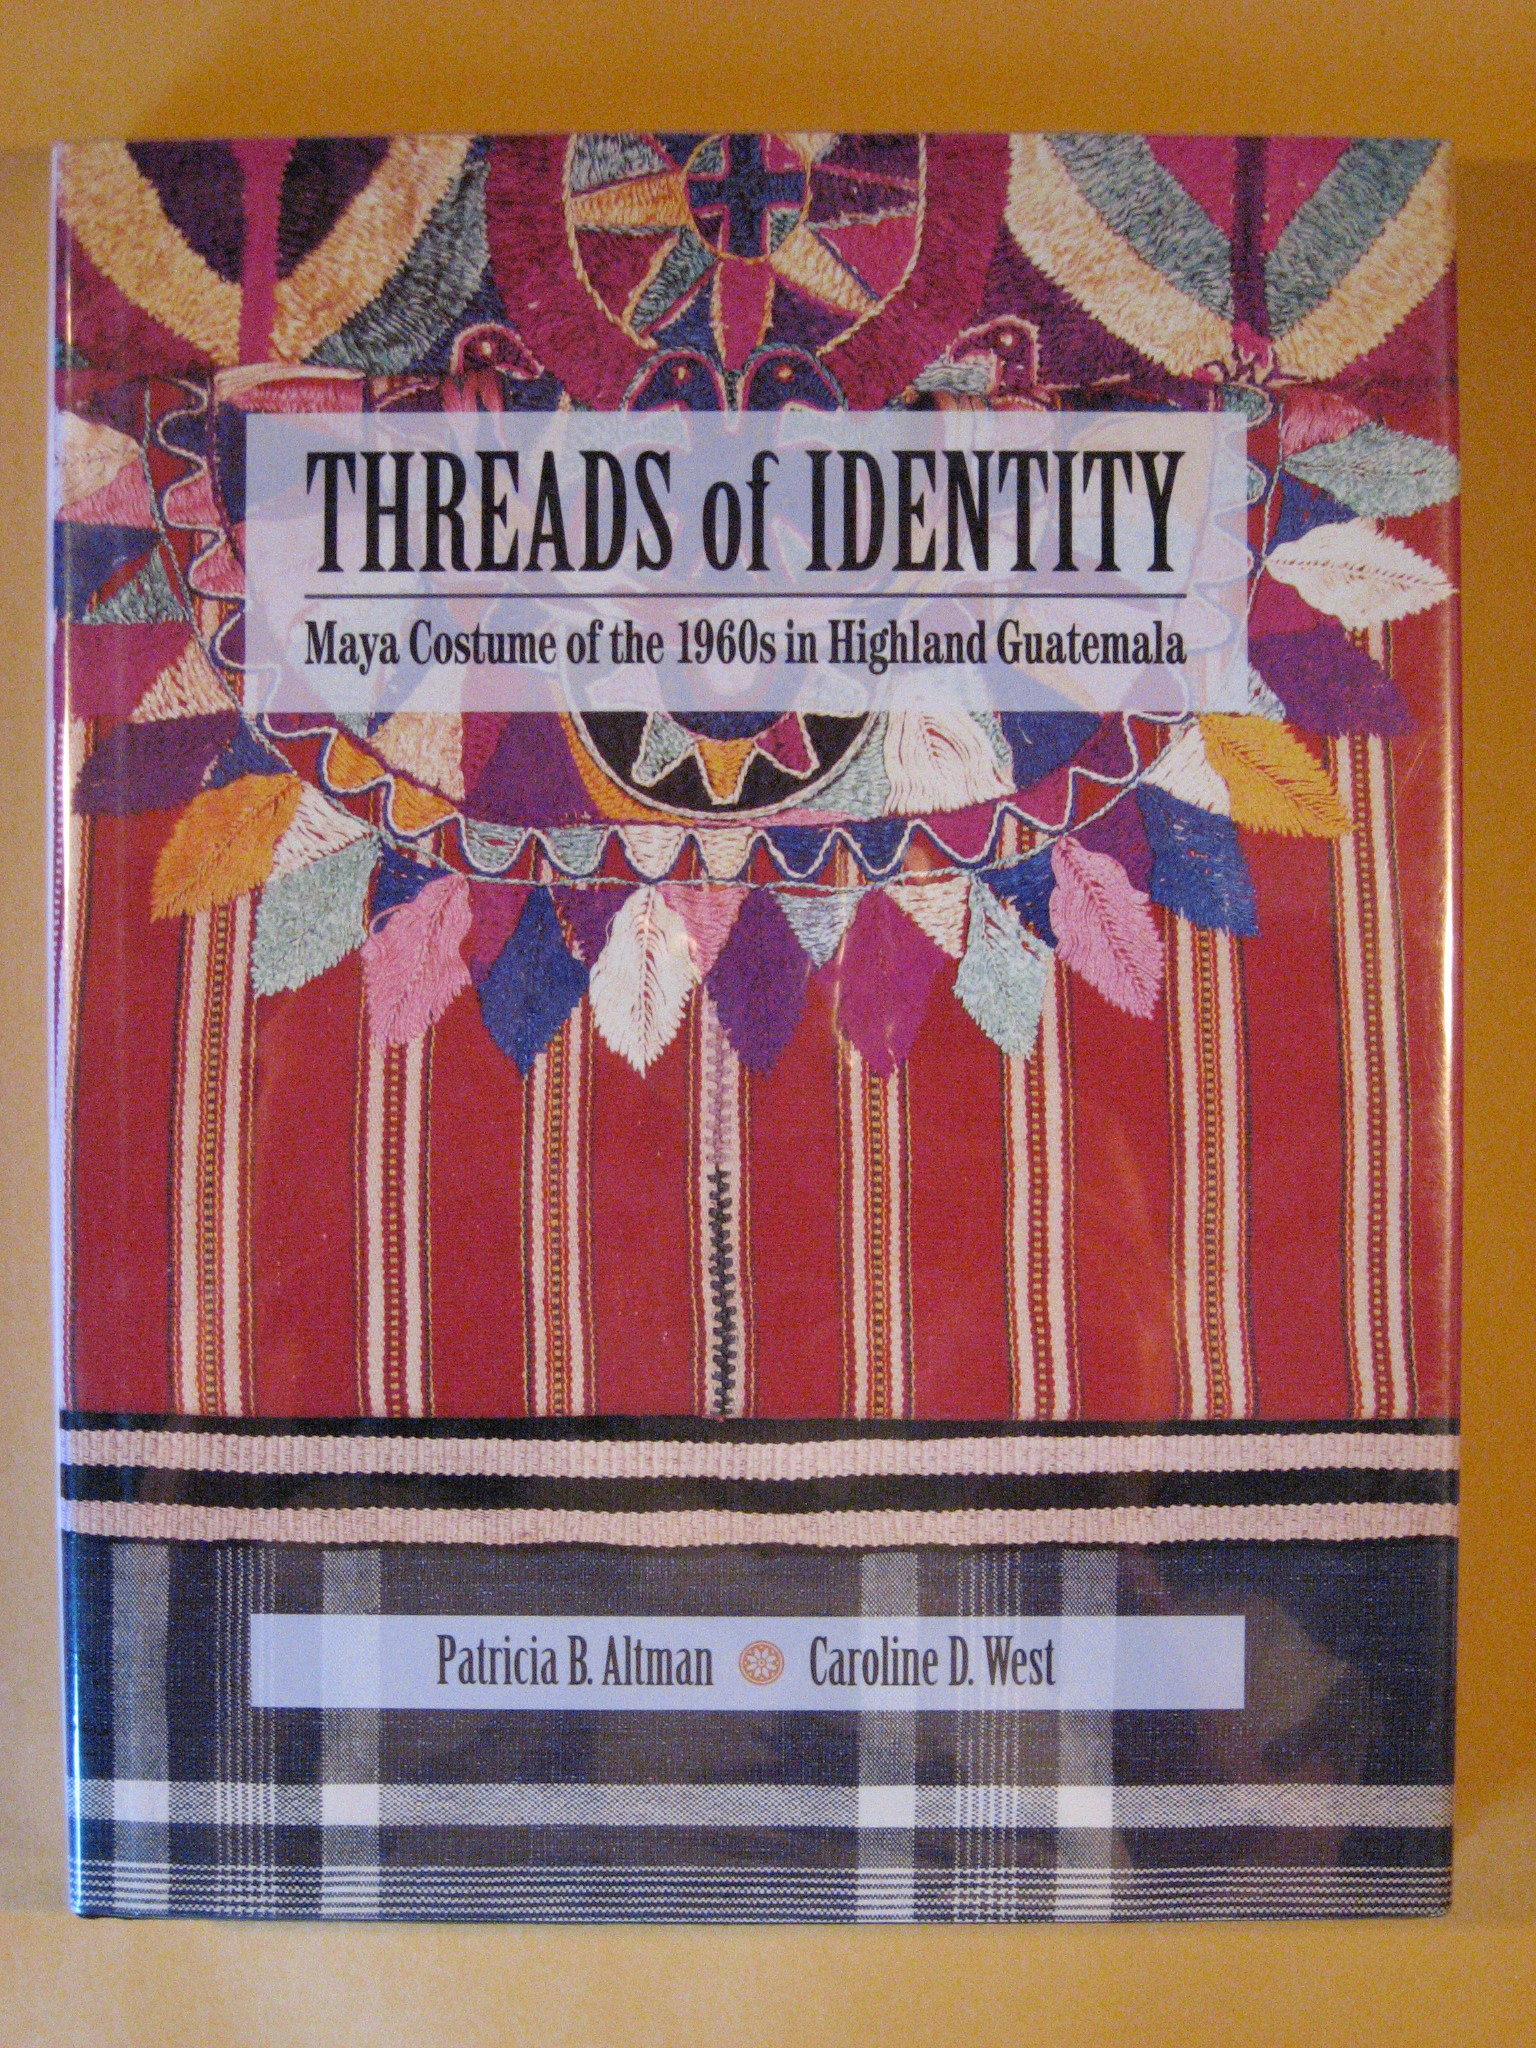 Threads of Identity: Maya Costume of the 1960s in Highland Guatemala, Altman, Patricia B.; West, Caroline D.